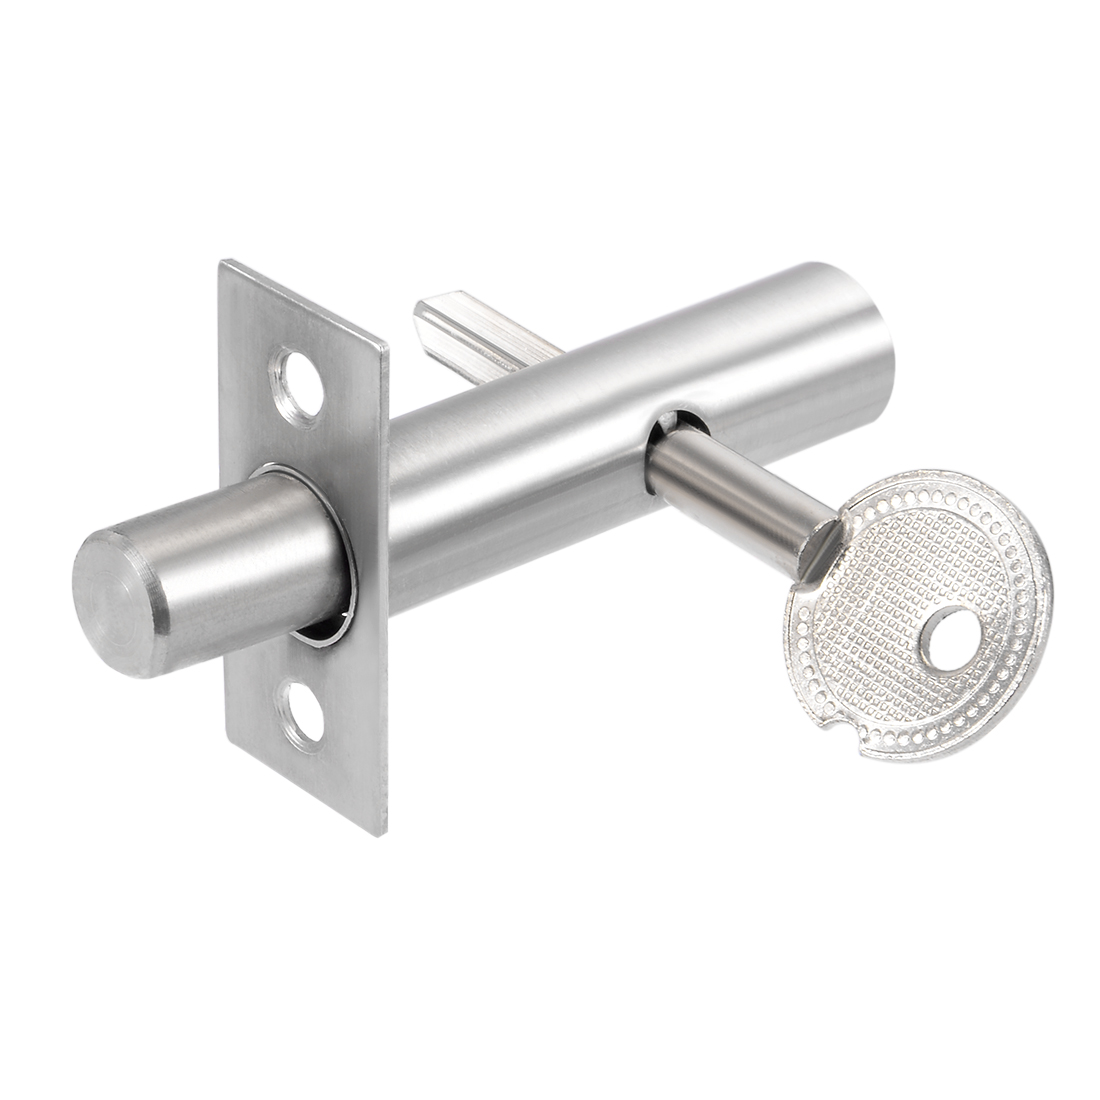 13mm Dia Cylinder Core Stainless Steel Hidden Tubewell Key Mortise Lock Silver